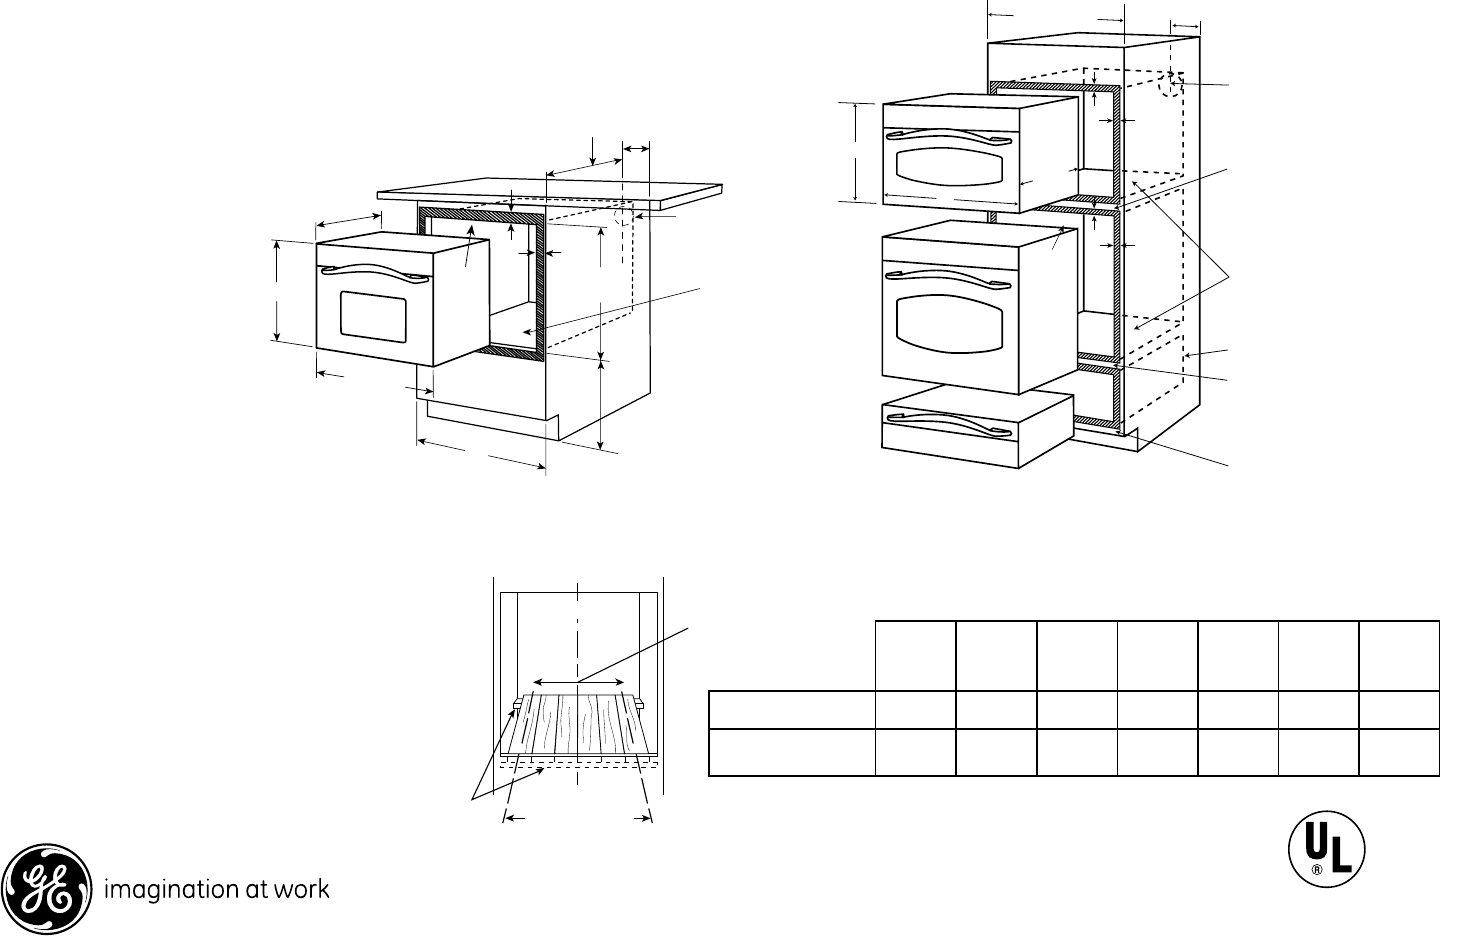 30 Wall Oven Cabinet Size Manual Guide